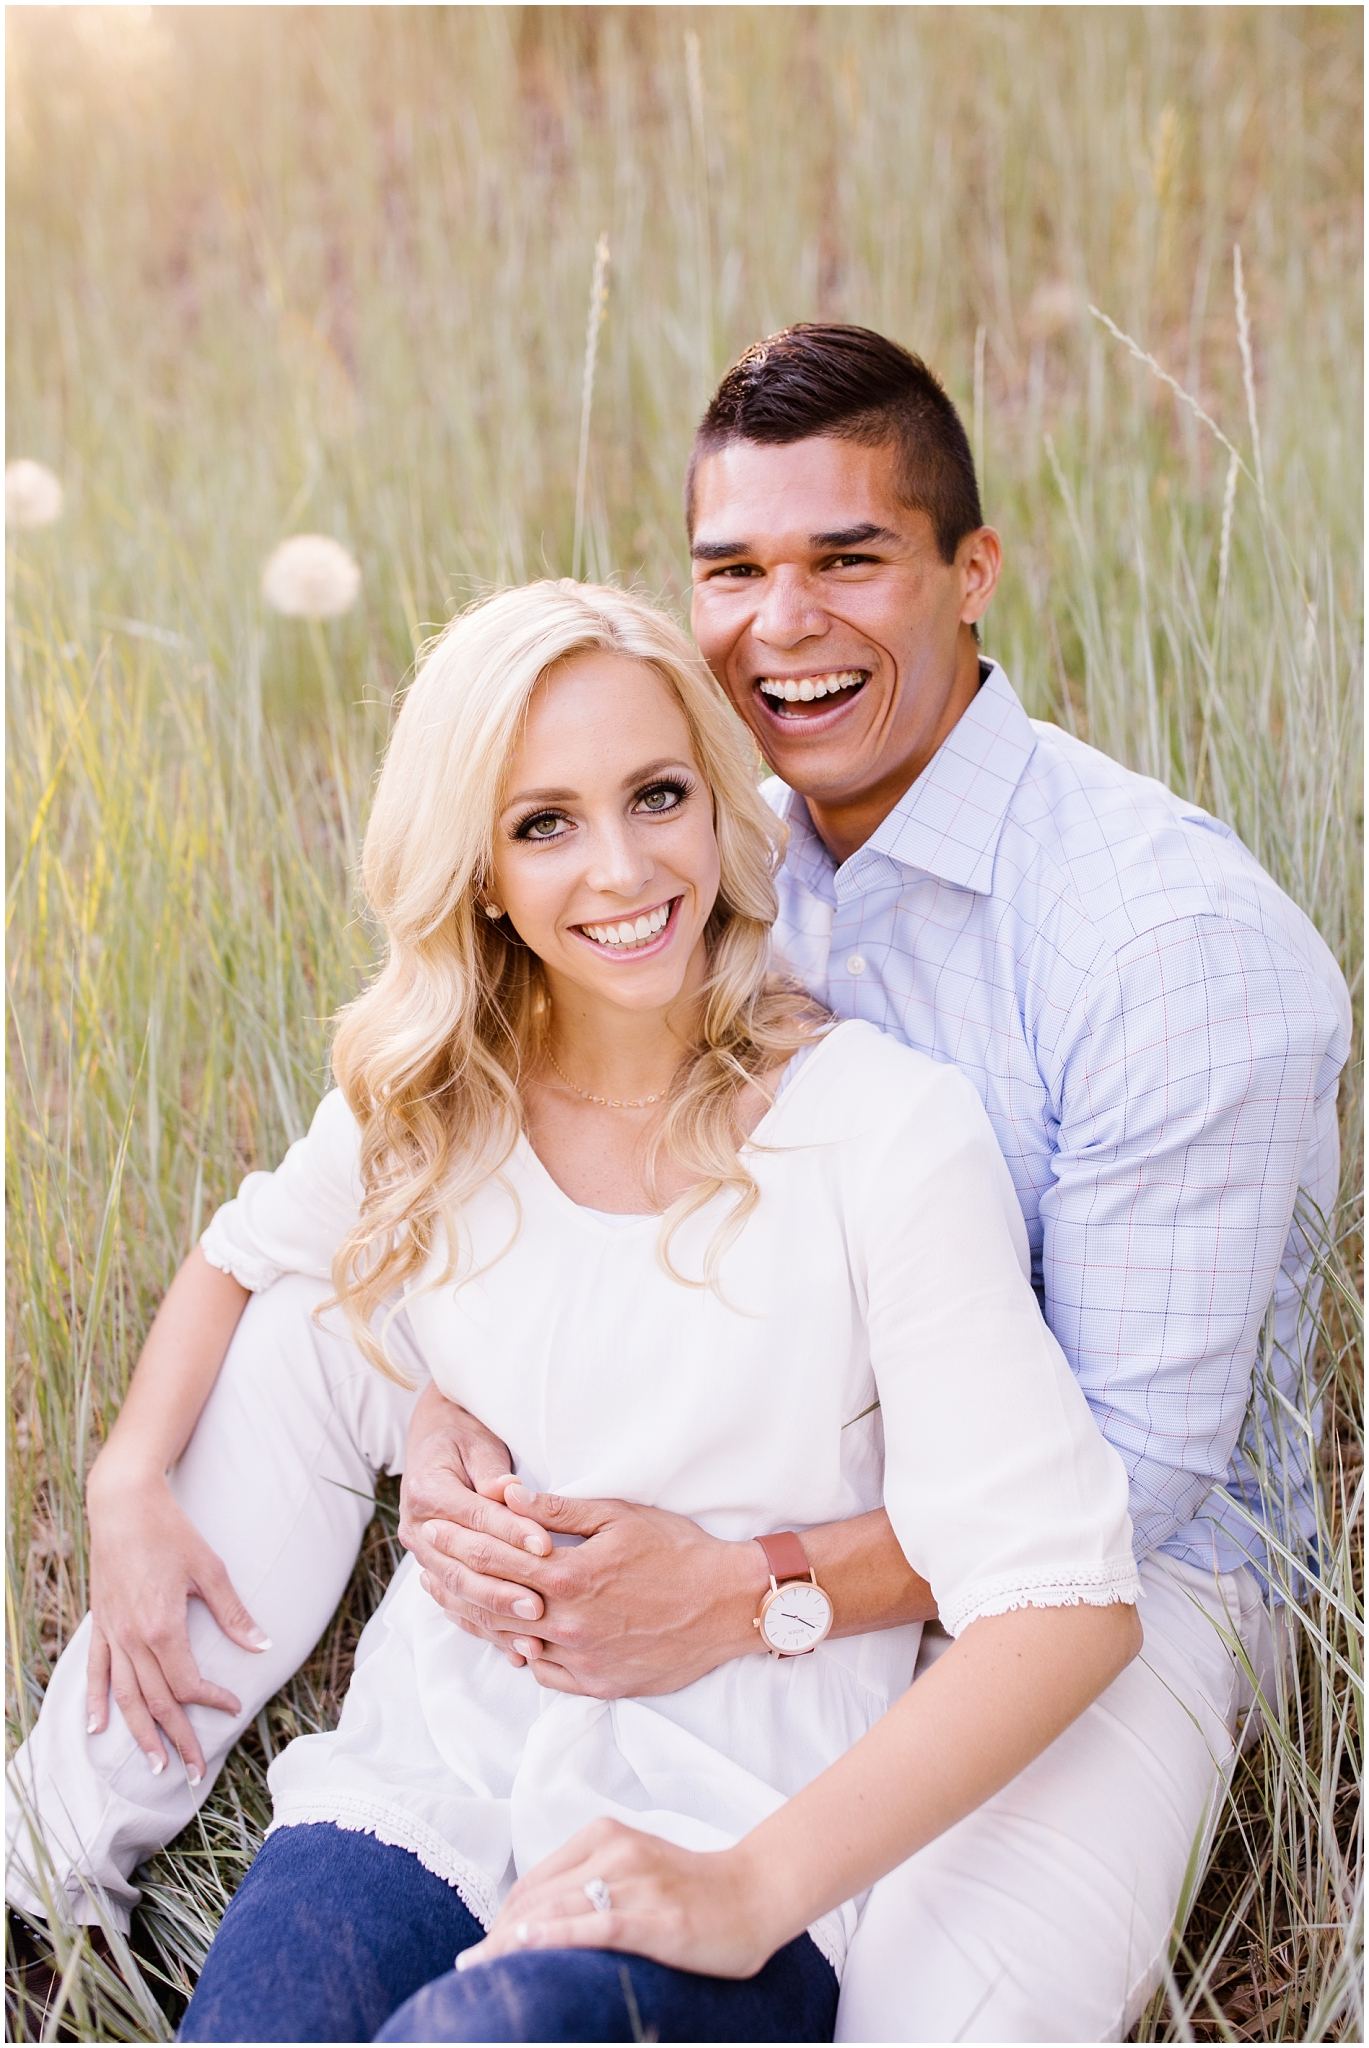 HCengagements-4_Lizzie-B-Imagery-Utah-Wedding-Photographer-Park-City-Salt-Lake-City-Payson-Canyon-Engagement-Session.jpg